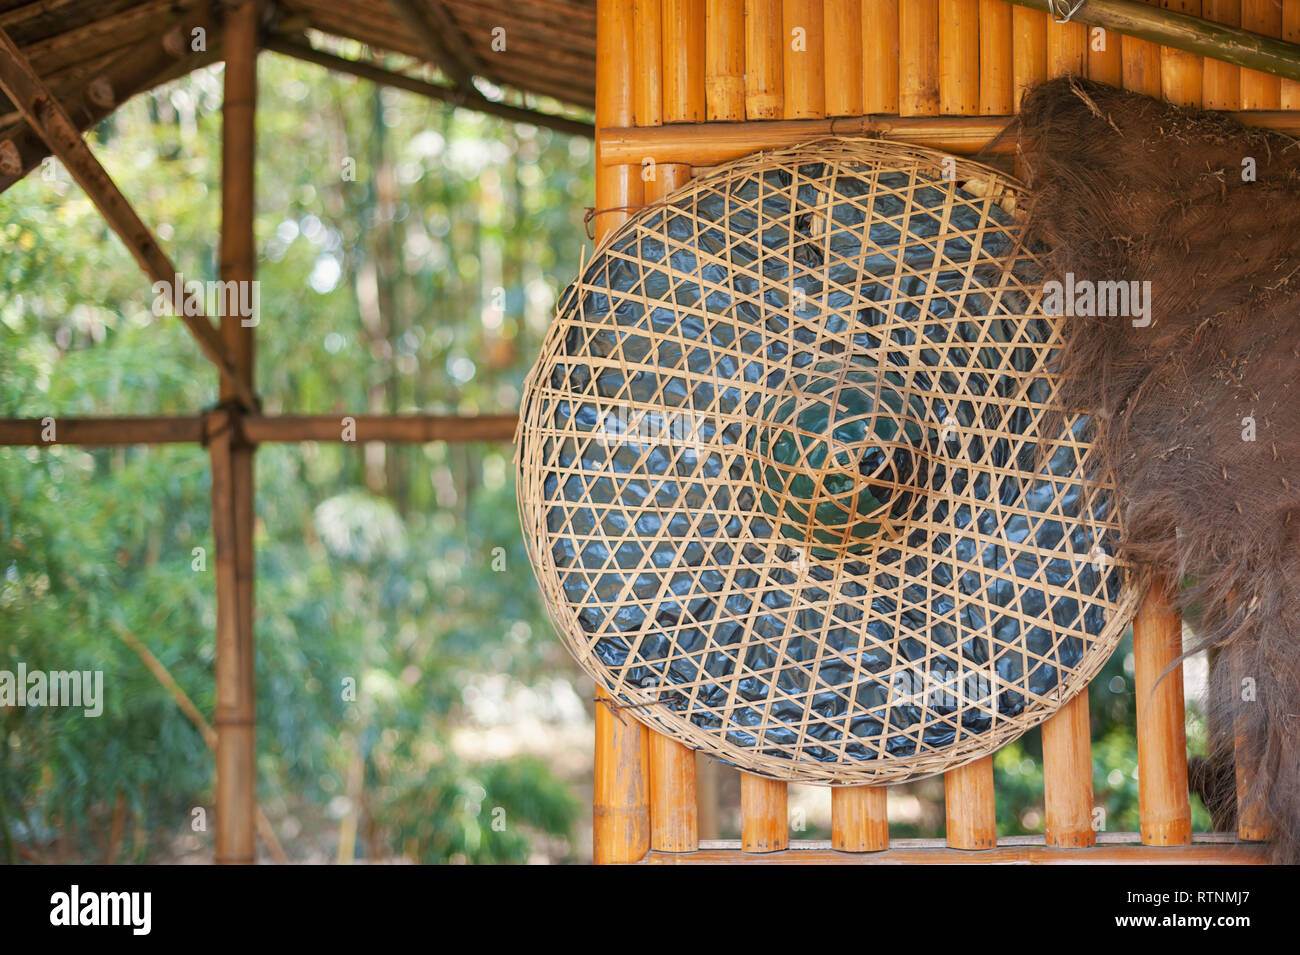 22aa38487 Chinese straw hat hanging on a bamboo wall in the countryside, China -  Stock Image